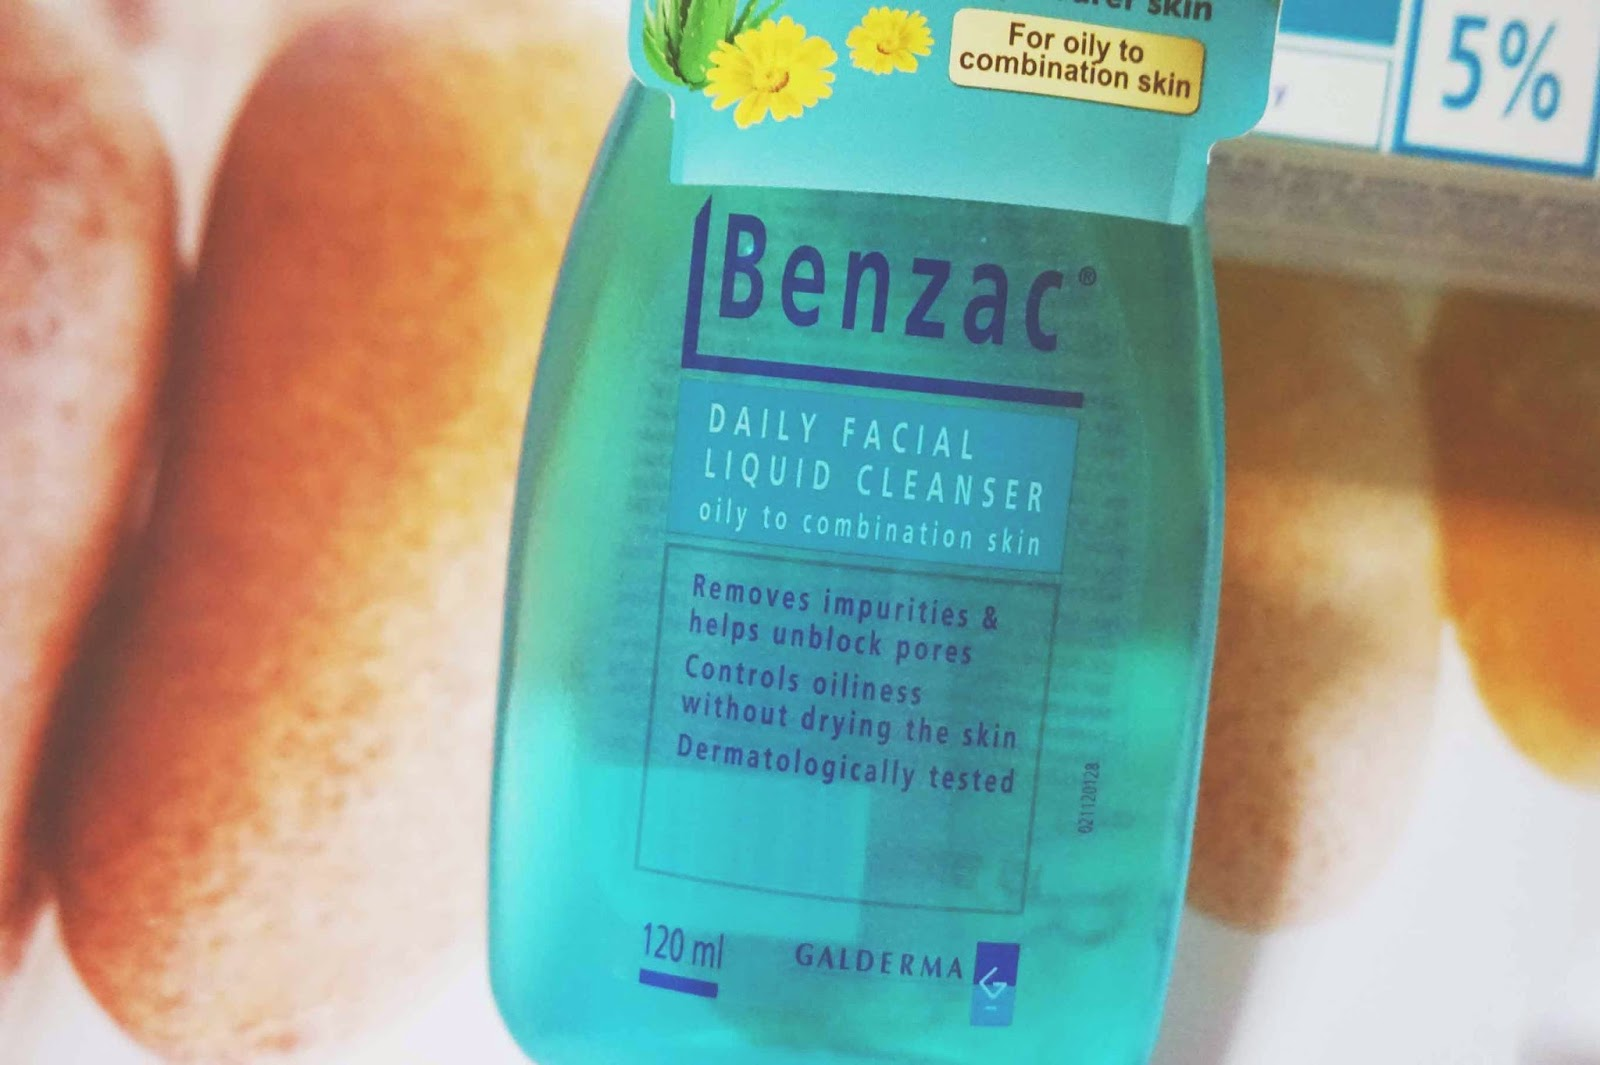 Topical ivermectin lotion for head lice